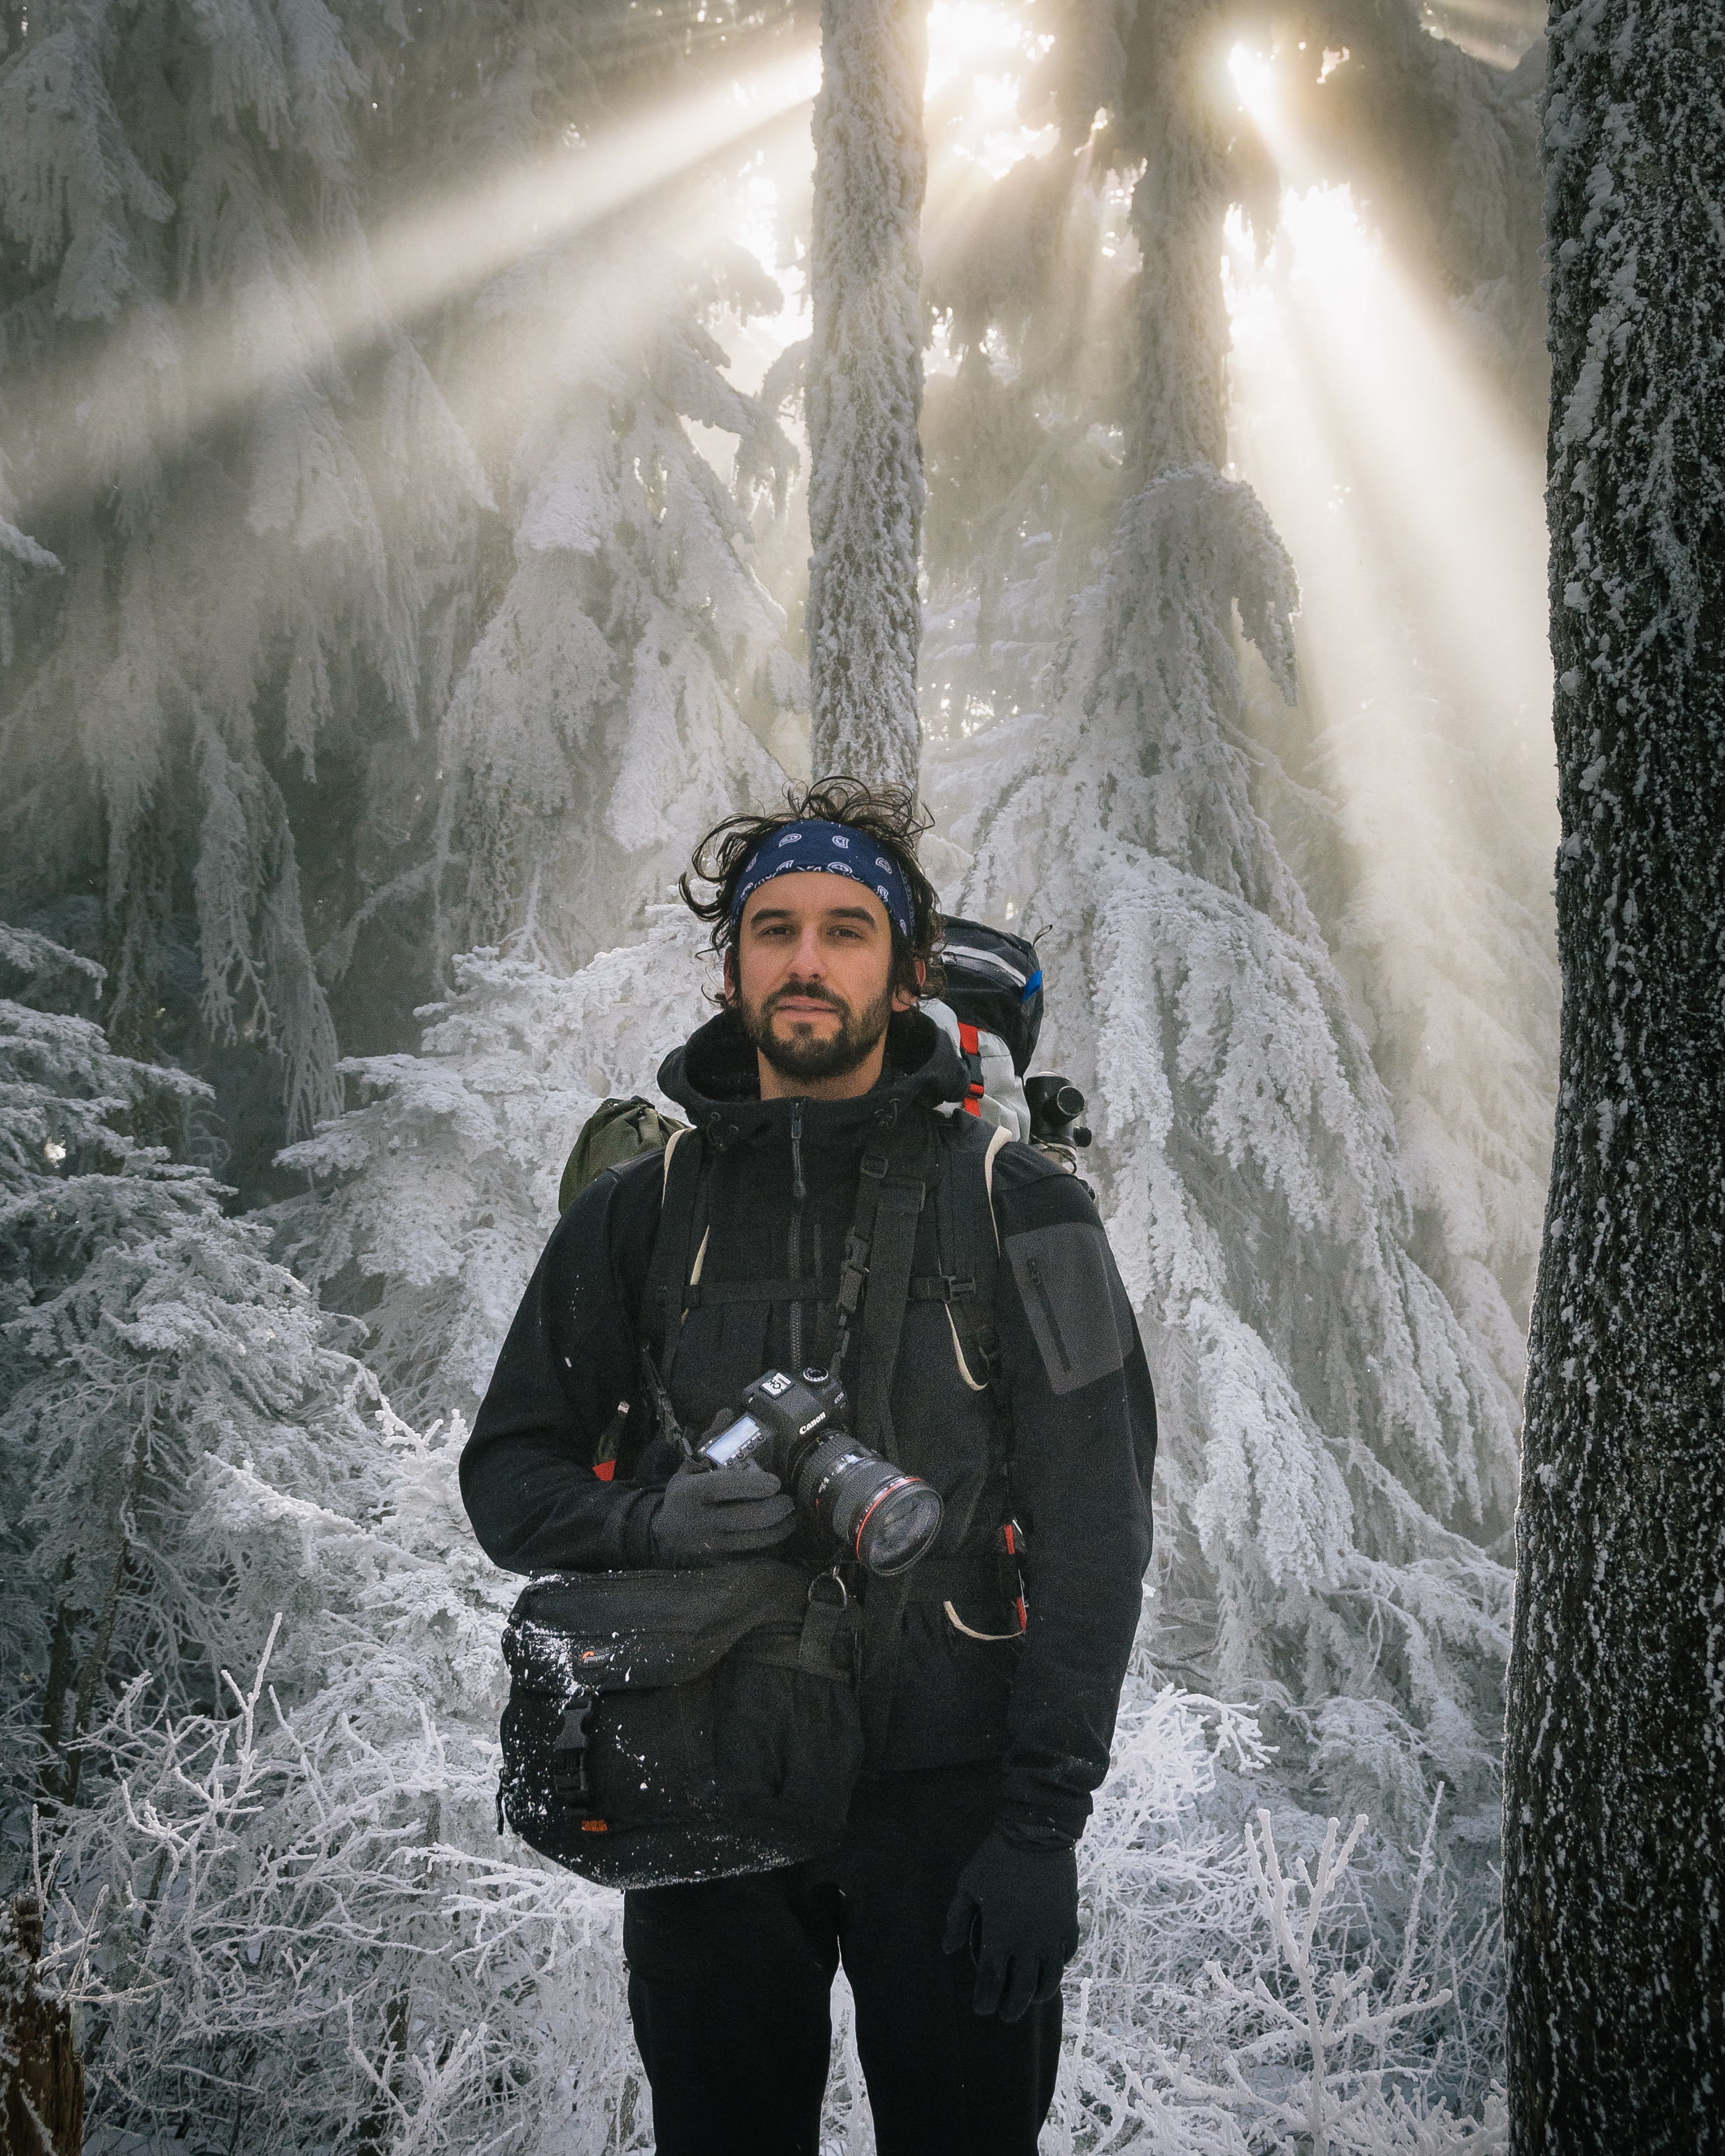 Photo taken by Jason George on the hike to the Sandy Glacier Cave on Mount Hood.